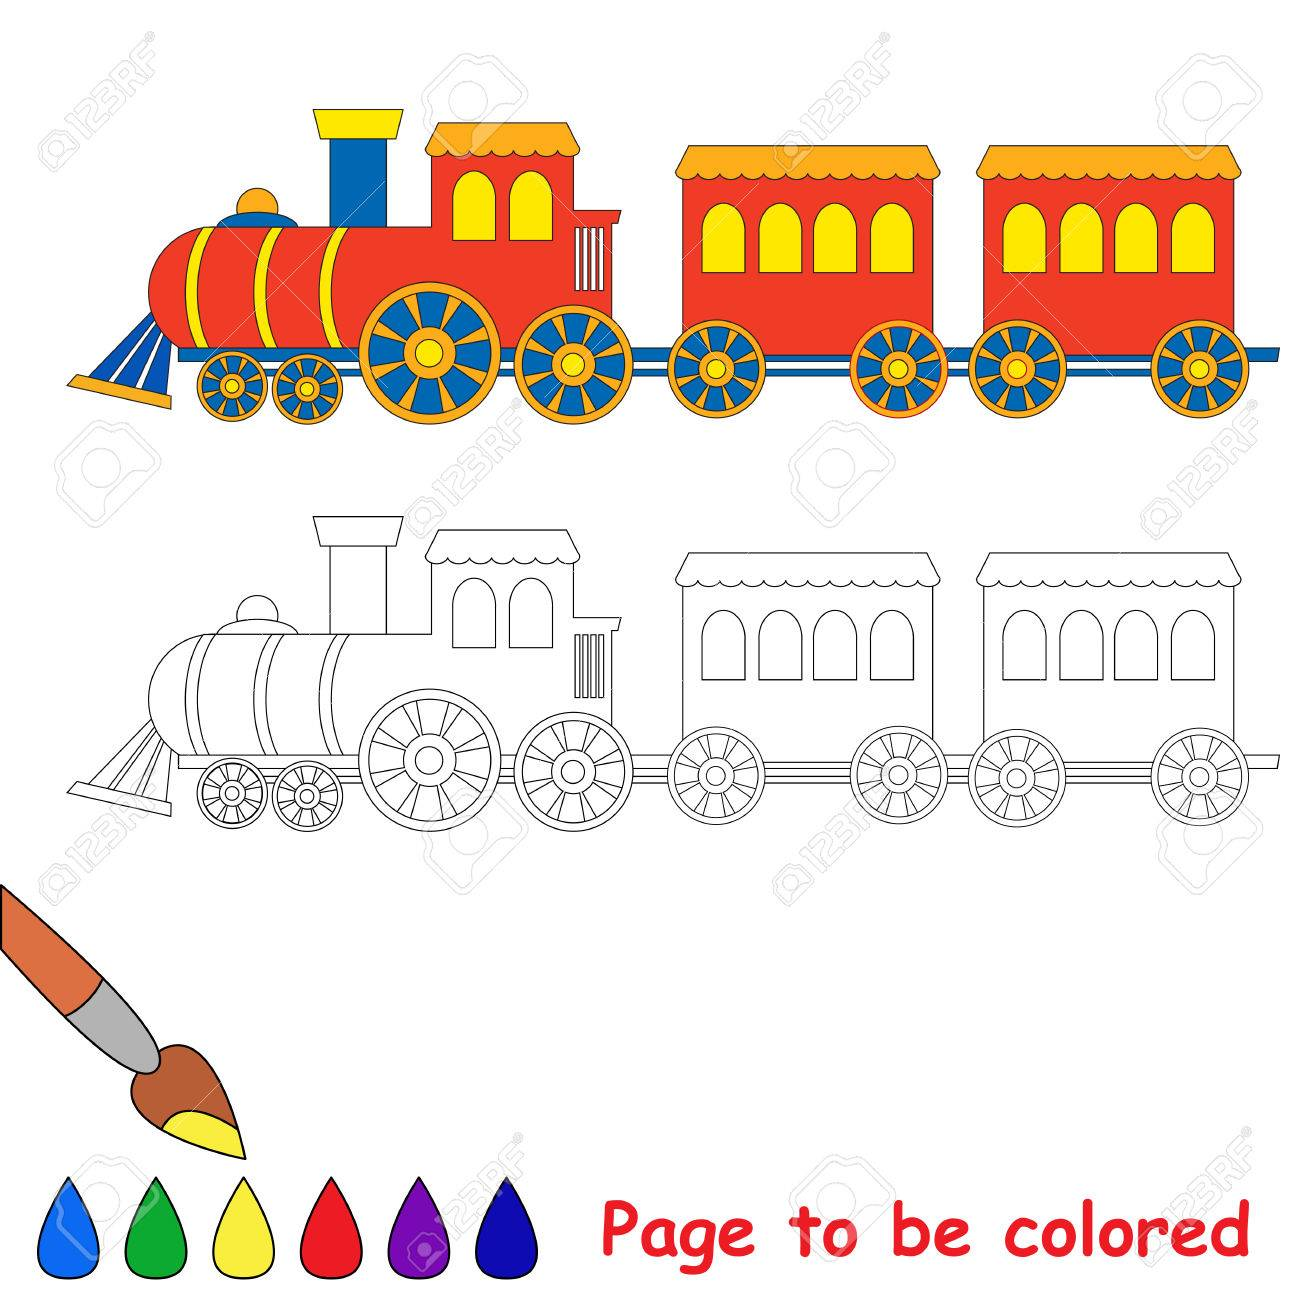 toy red blue locomotive train engine car coloring book for kids